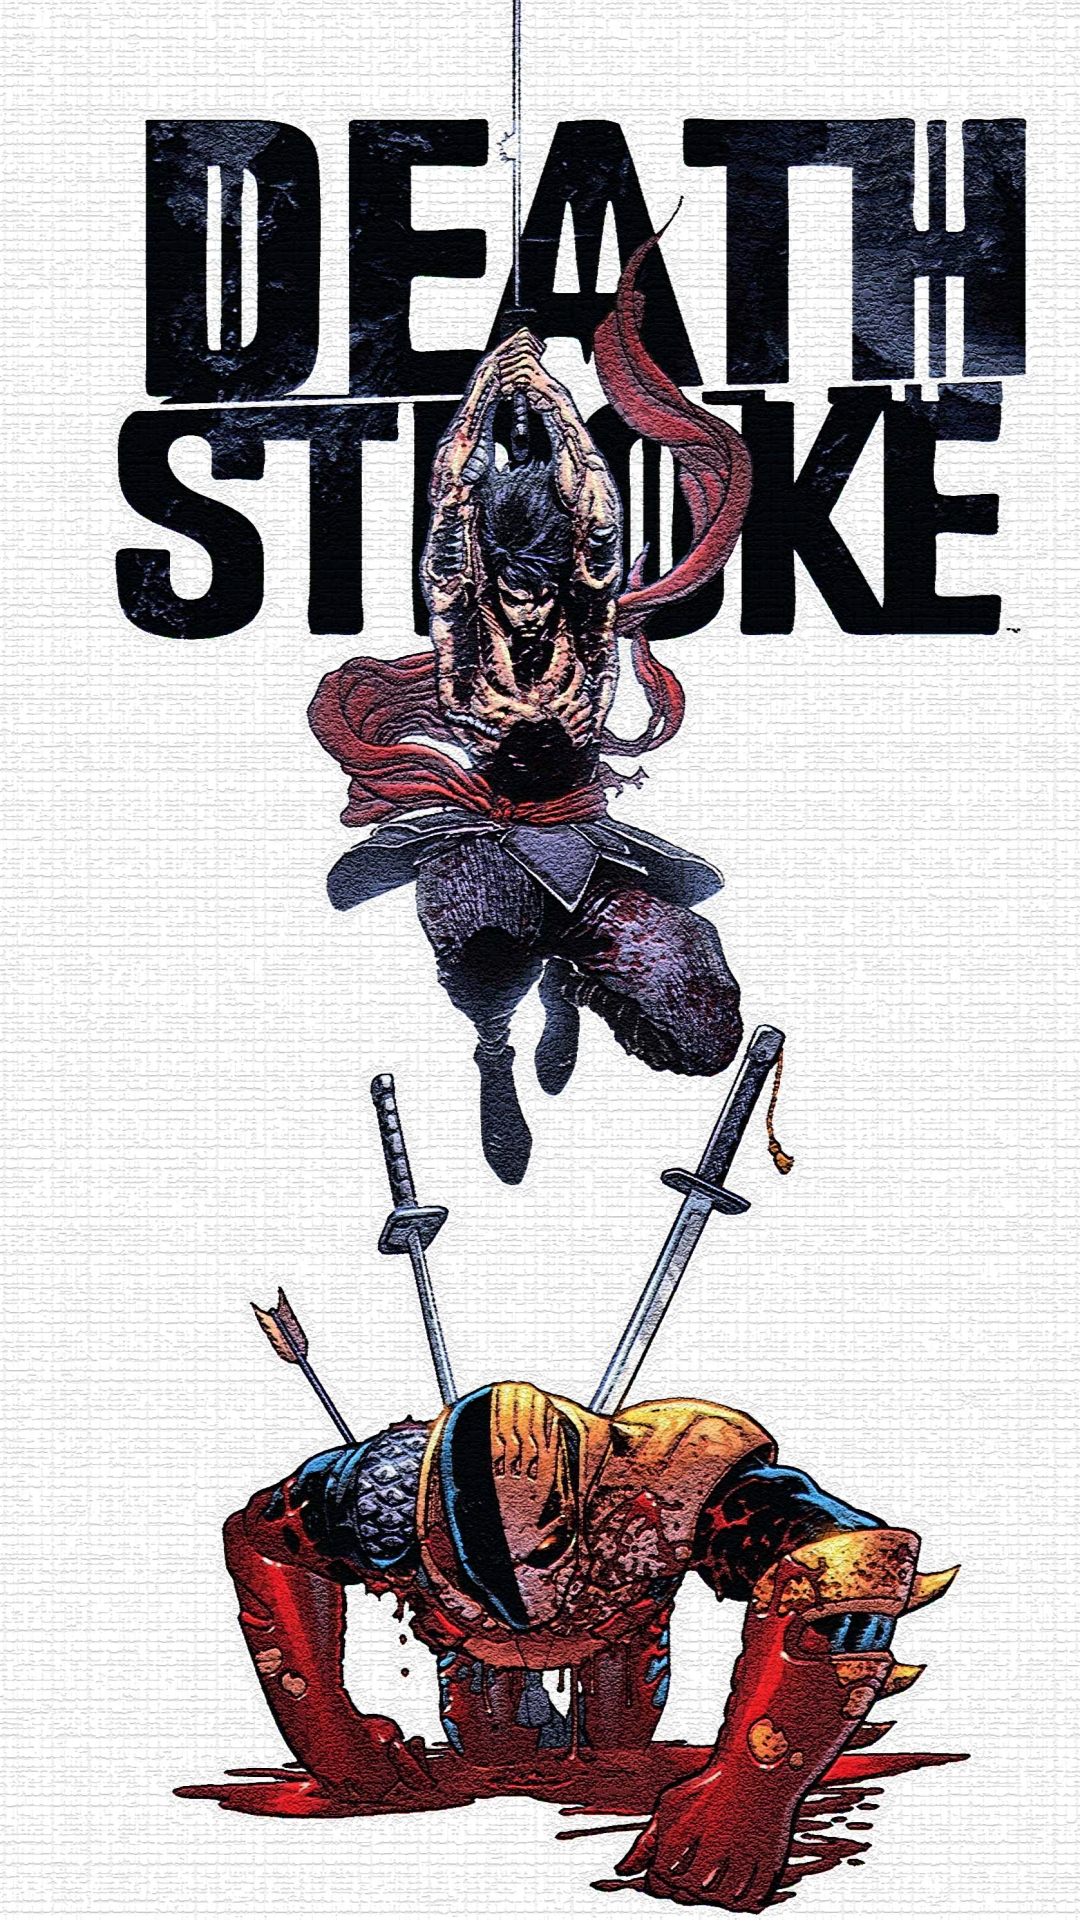 Comics Deathstroke 1080x1920 Wallpaper Id 664903 Mobile Abyss